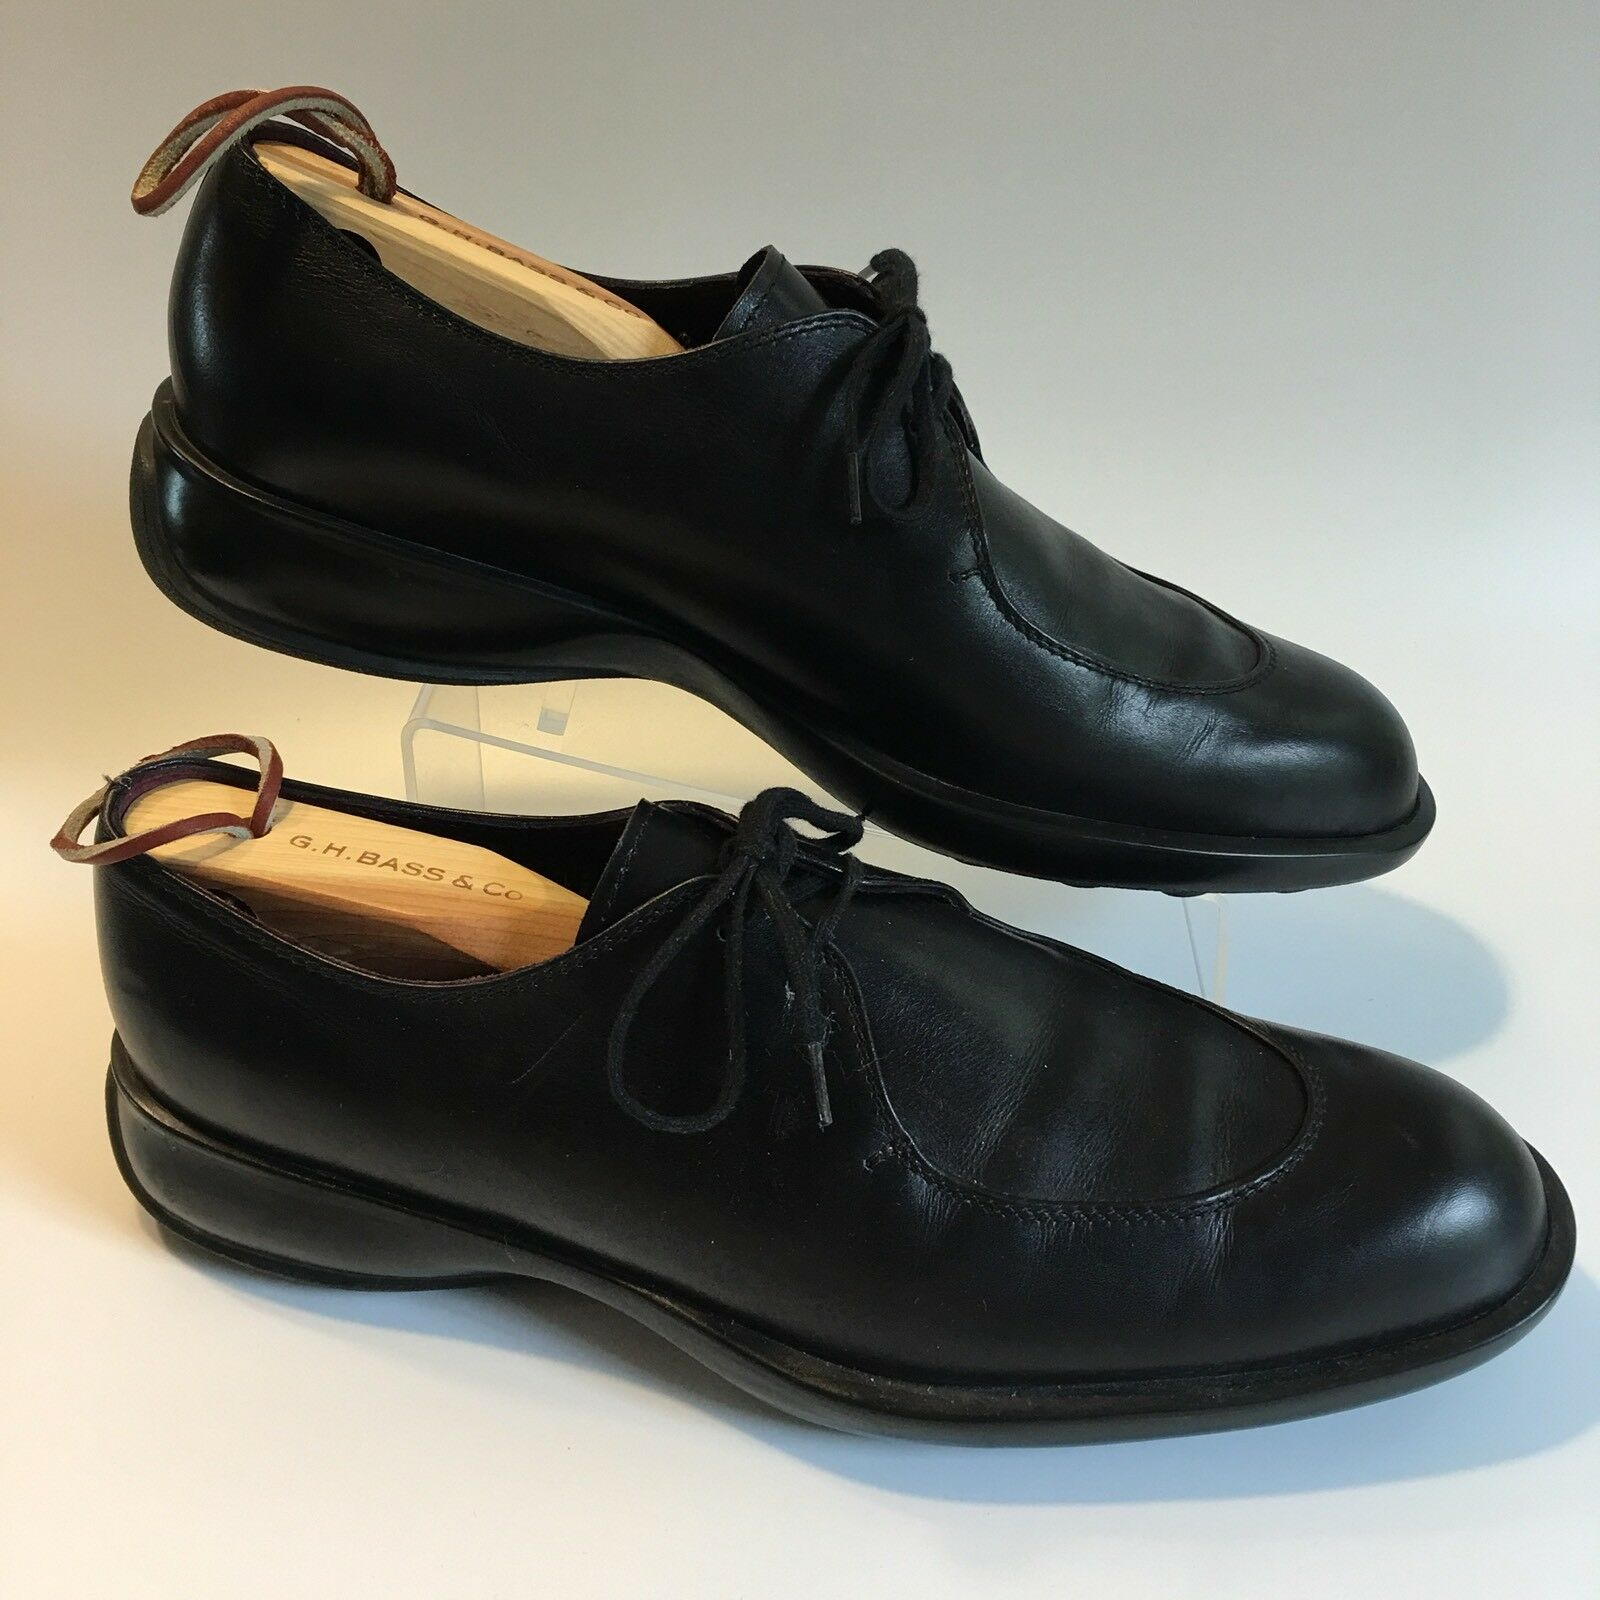 TOD'S Men's Black Leather Lace Up Oxfords shoes Size 40 (US 7)